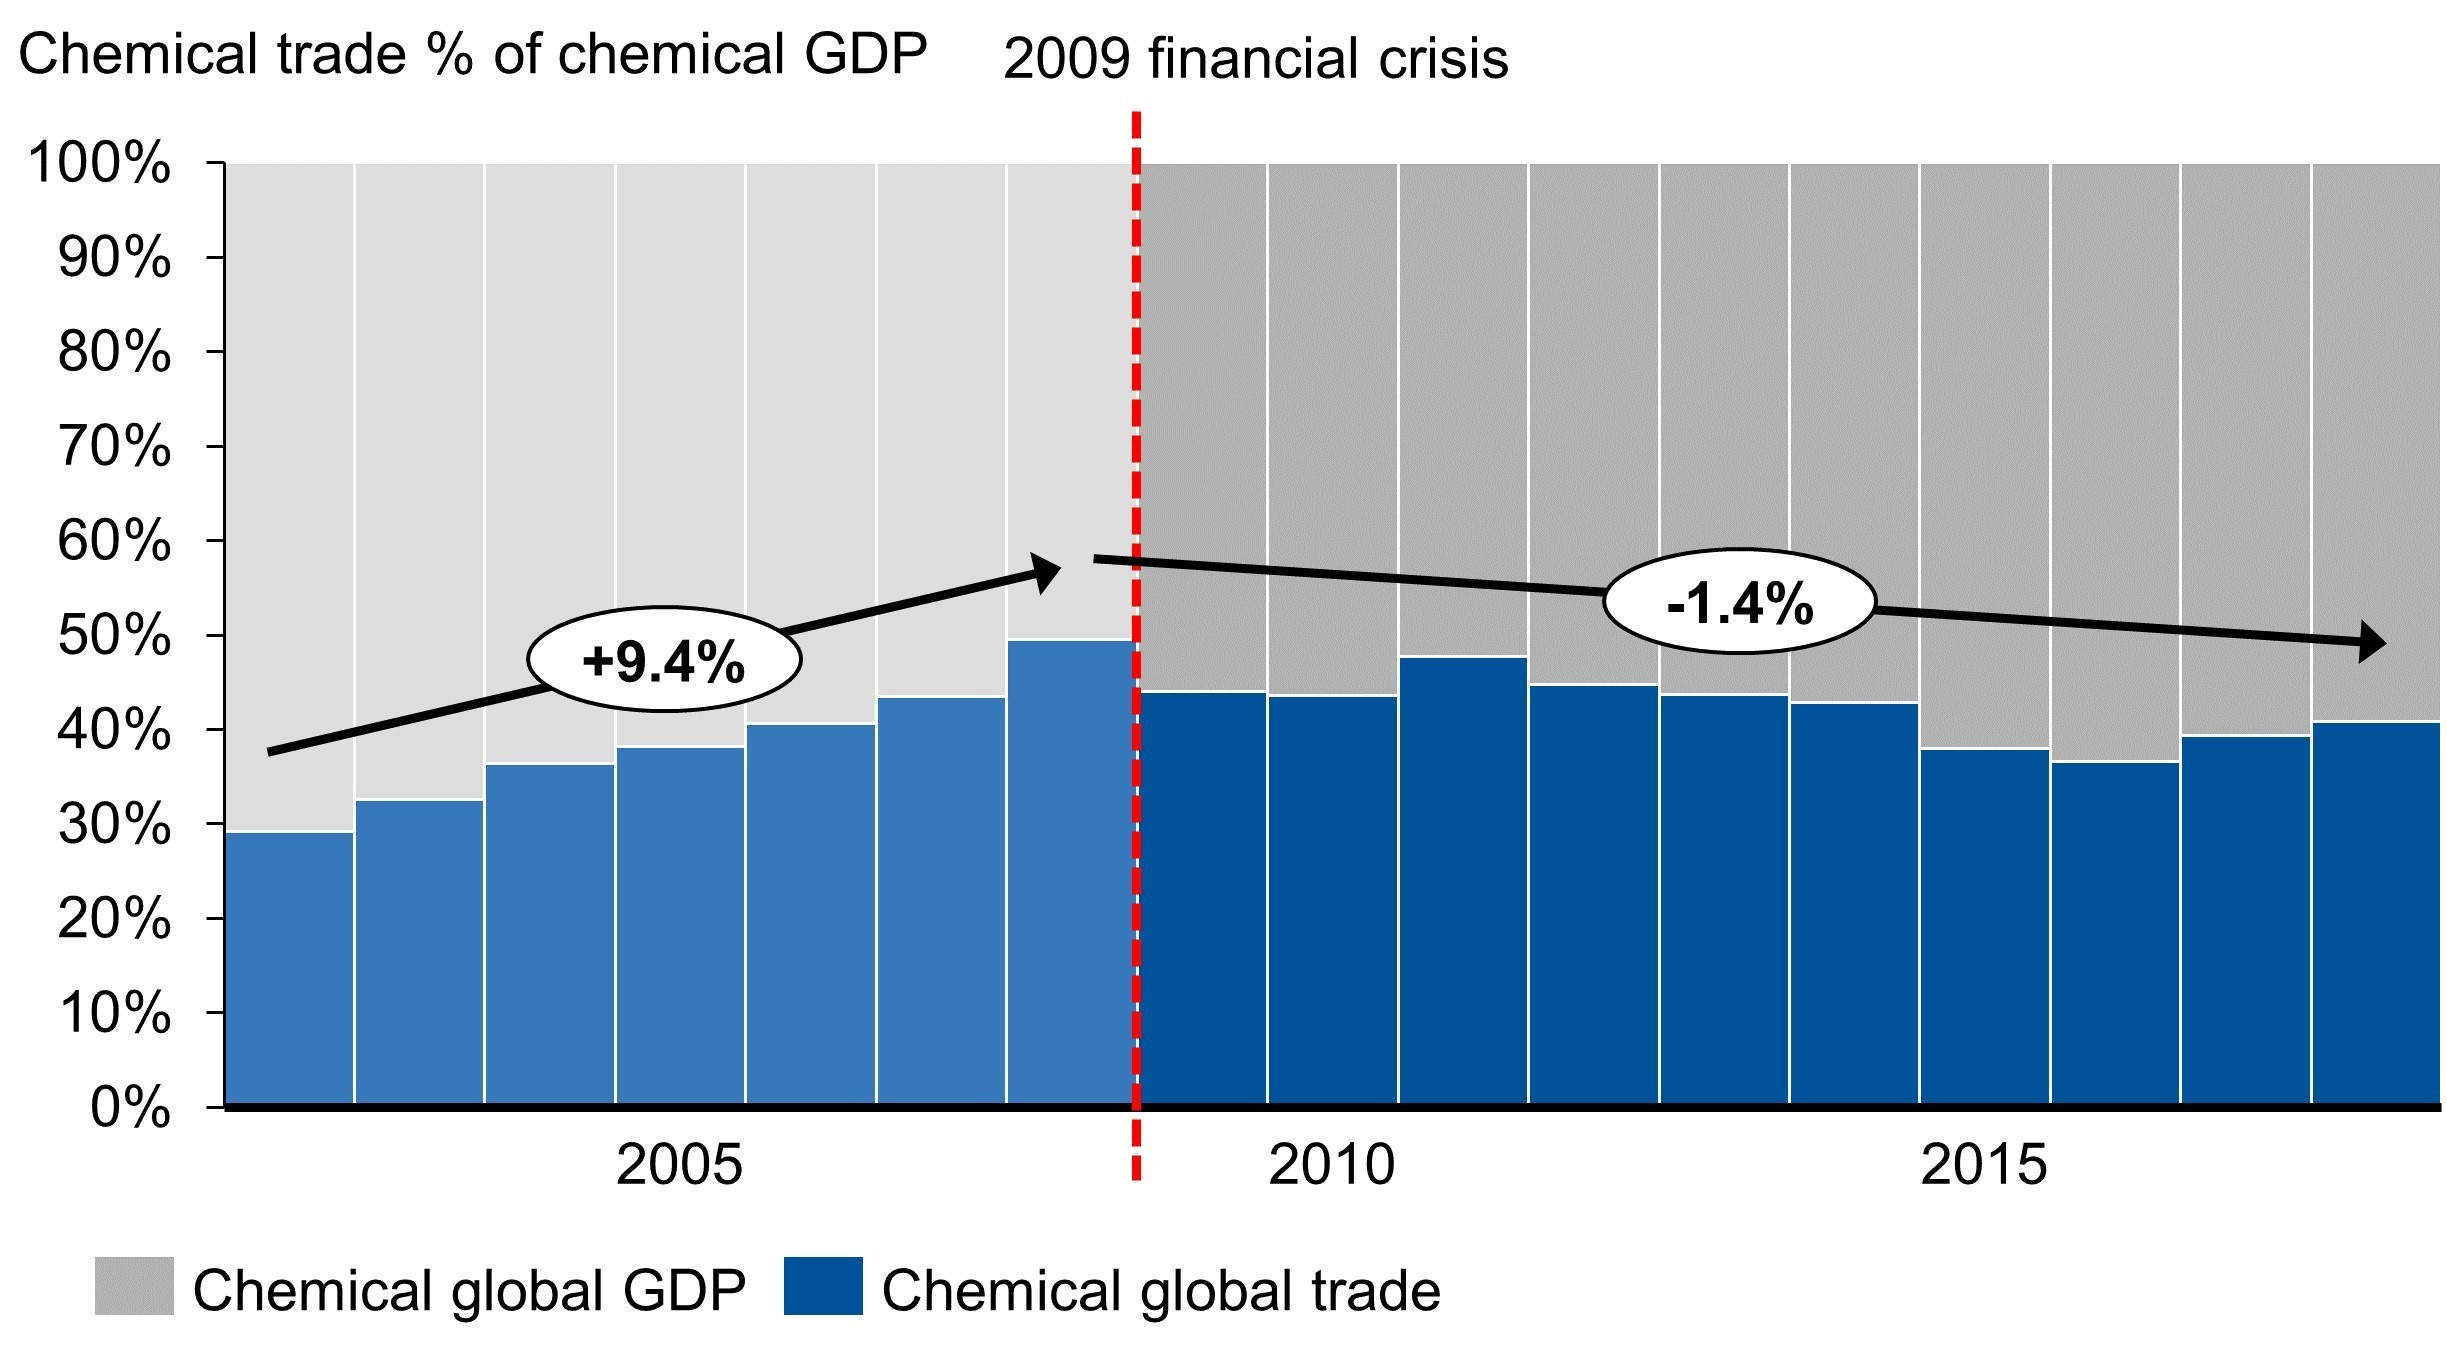 Global chemical trade as % of global chemical GDP